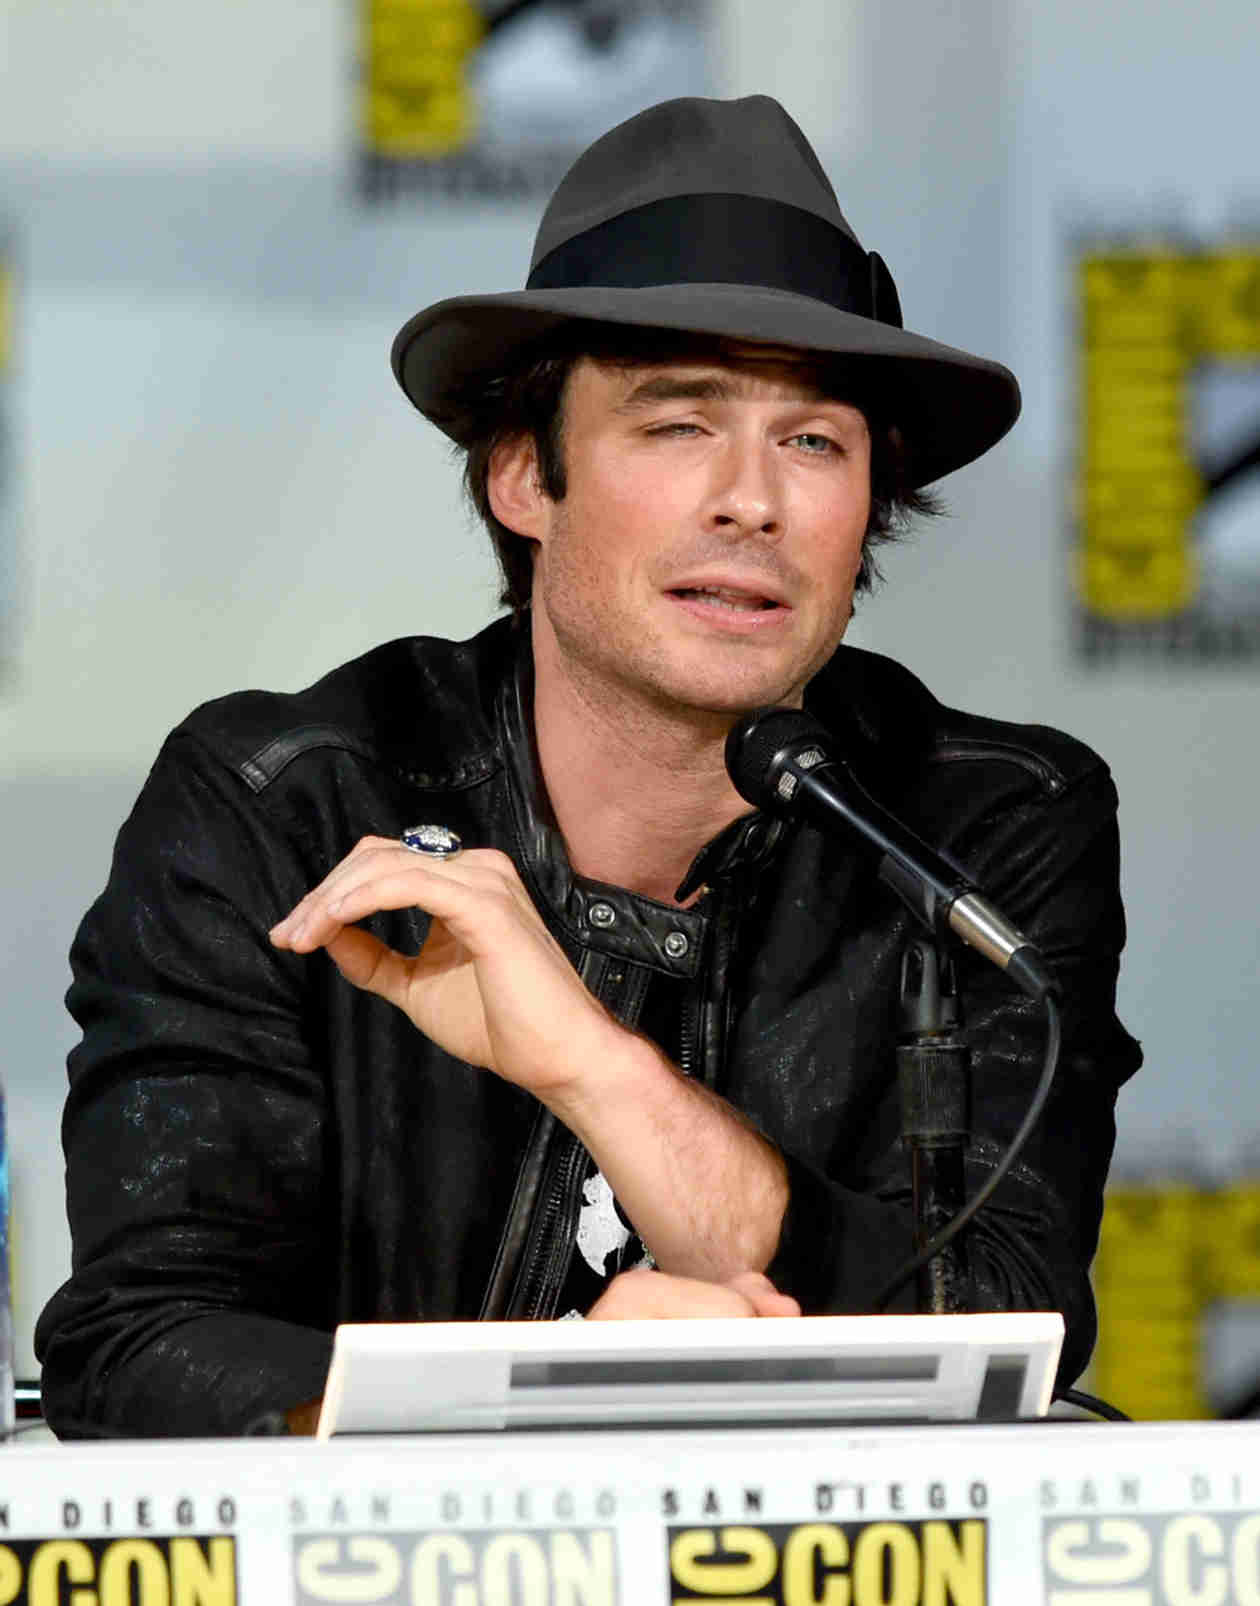 Ian Somerhalder Takes Us Behind the Scenes With The Vampire Diaries Cast (VIDEO)